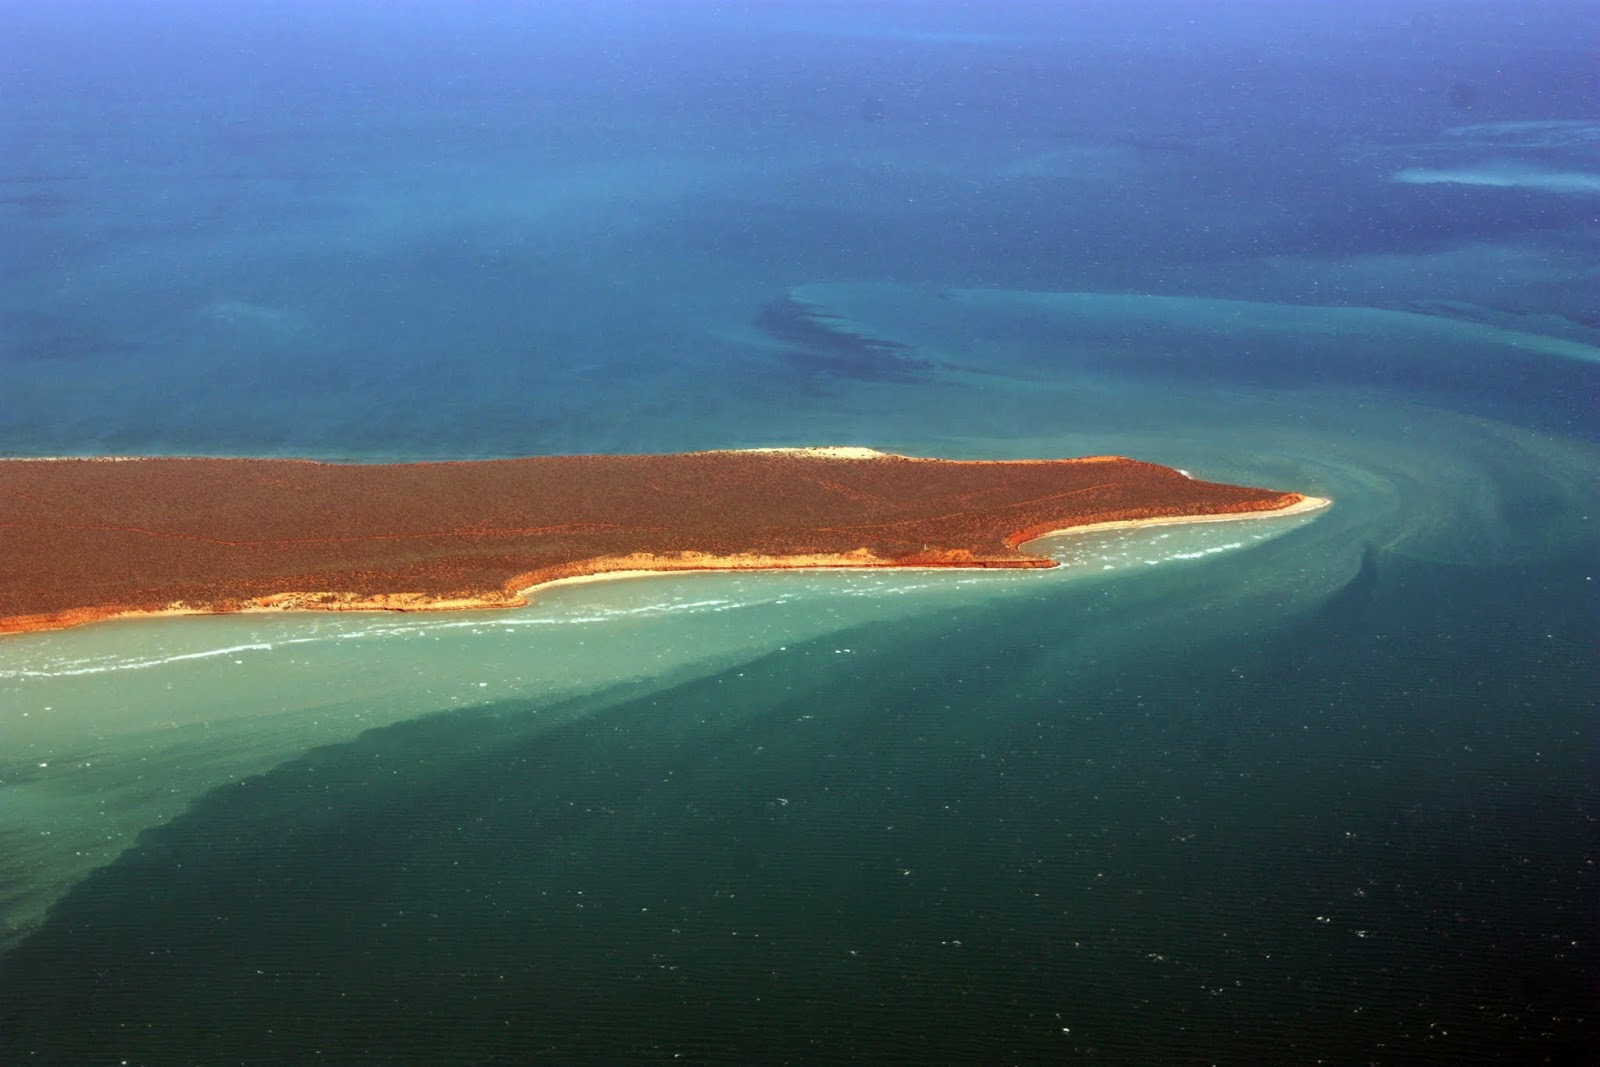 aerial view of point peron